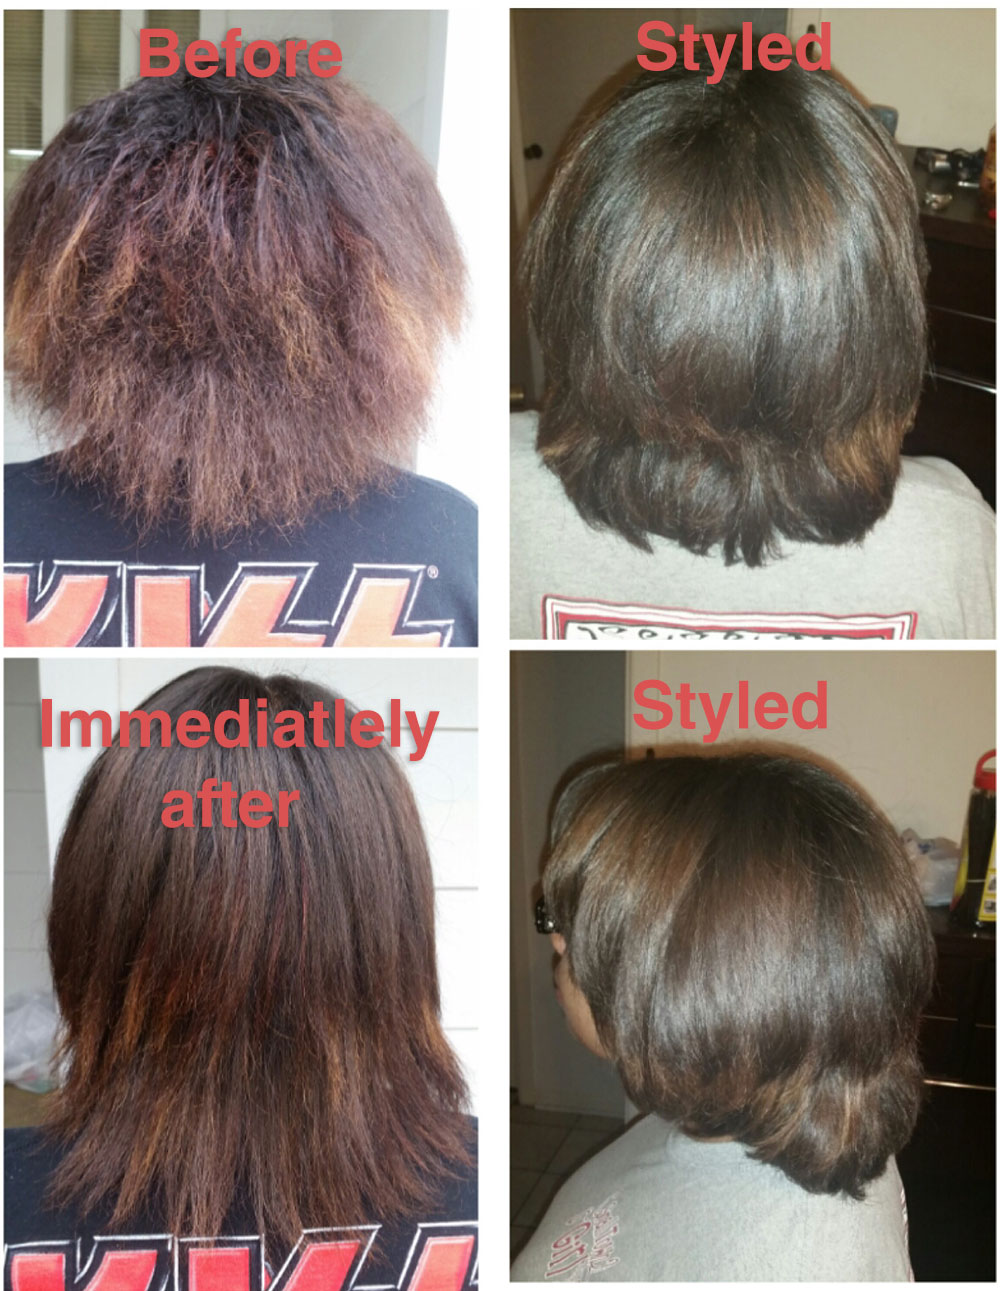 KERATIN BEFORE & AFTER PICS